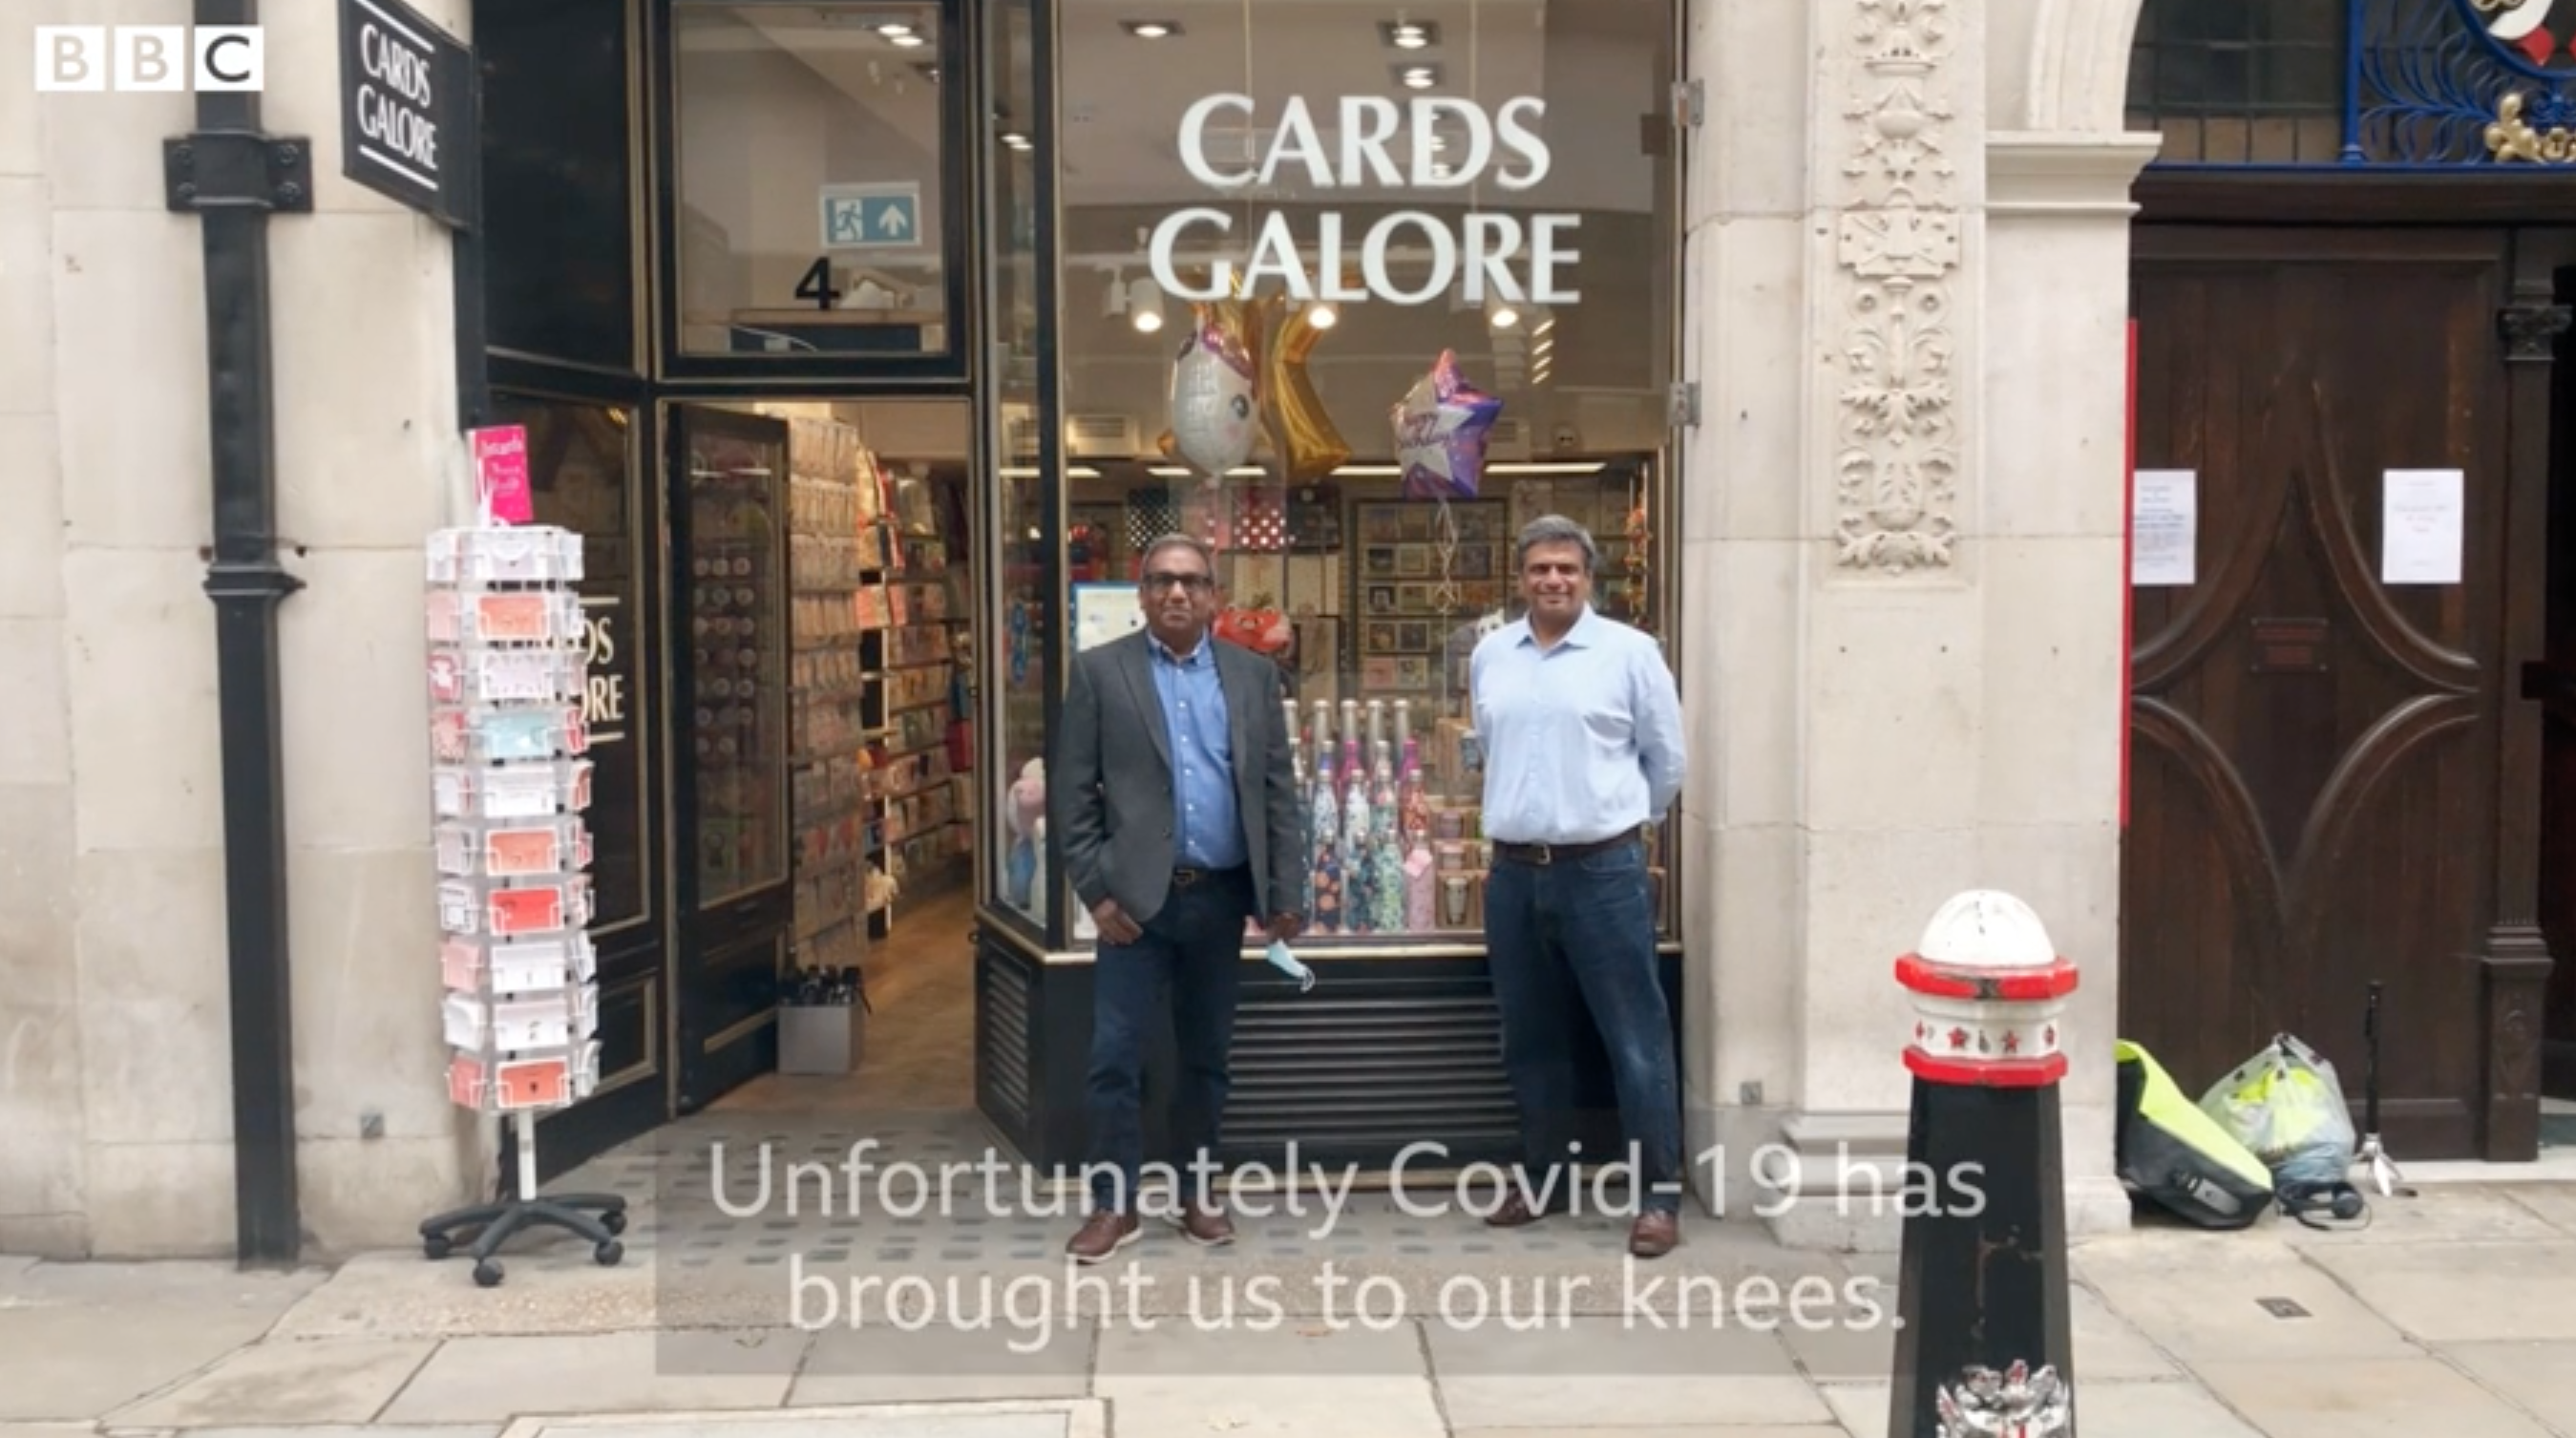 Above: Cards Galore's directors Rumit and Rajesh Shah appeared on BBC in July sharing the plight of city centre retailers.